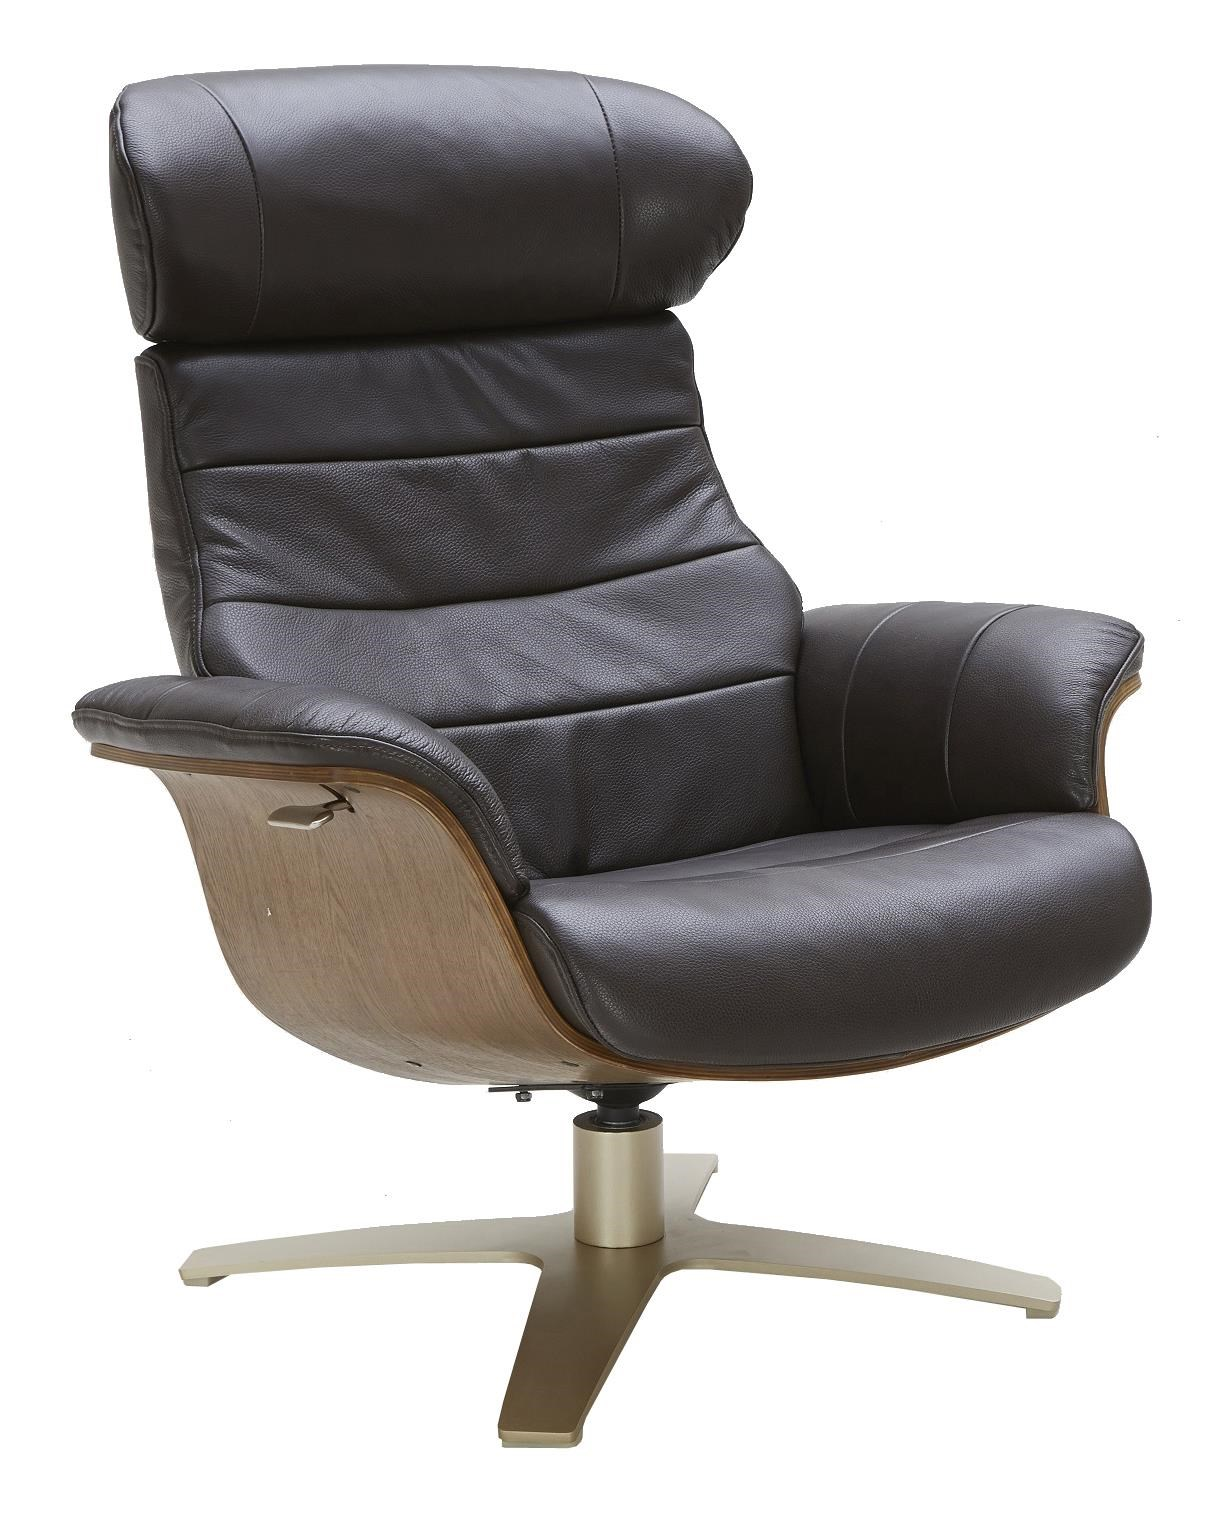 Evolution Chair Karma Leather Lean Back Swivel Chair By Urban Evolution At Belfort Furniture